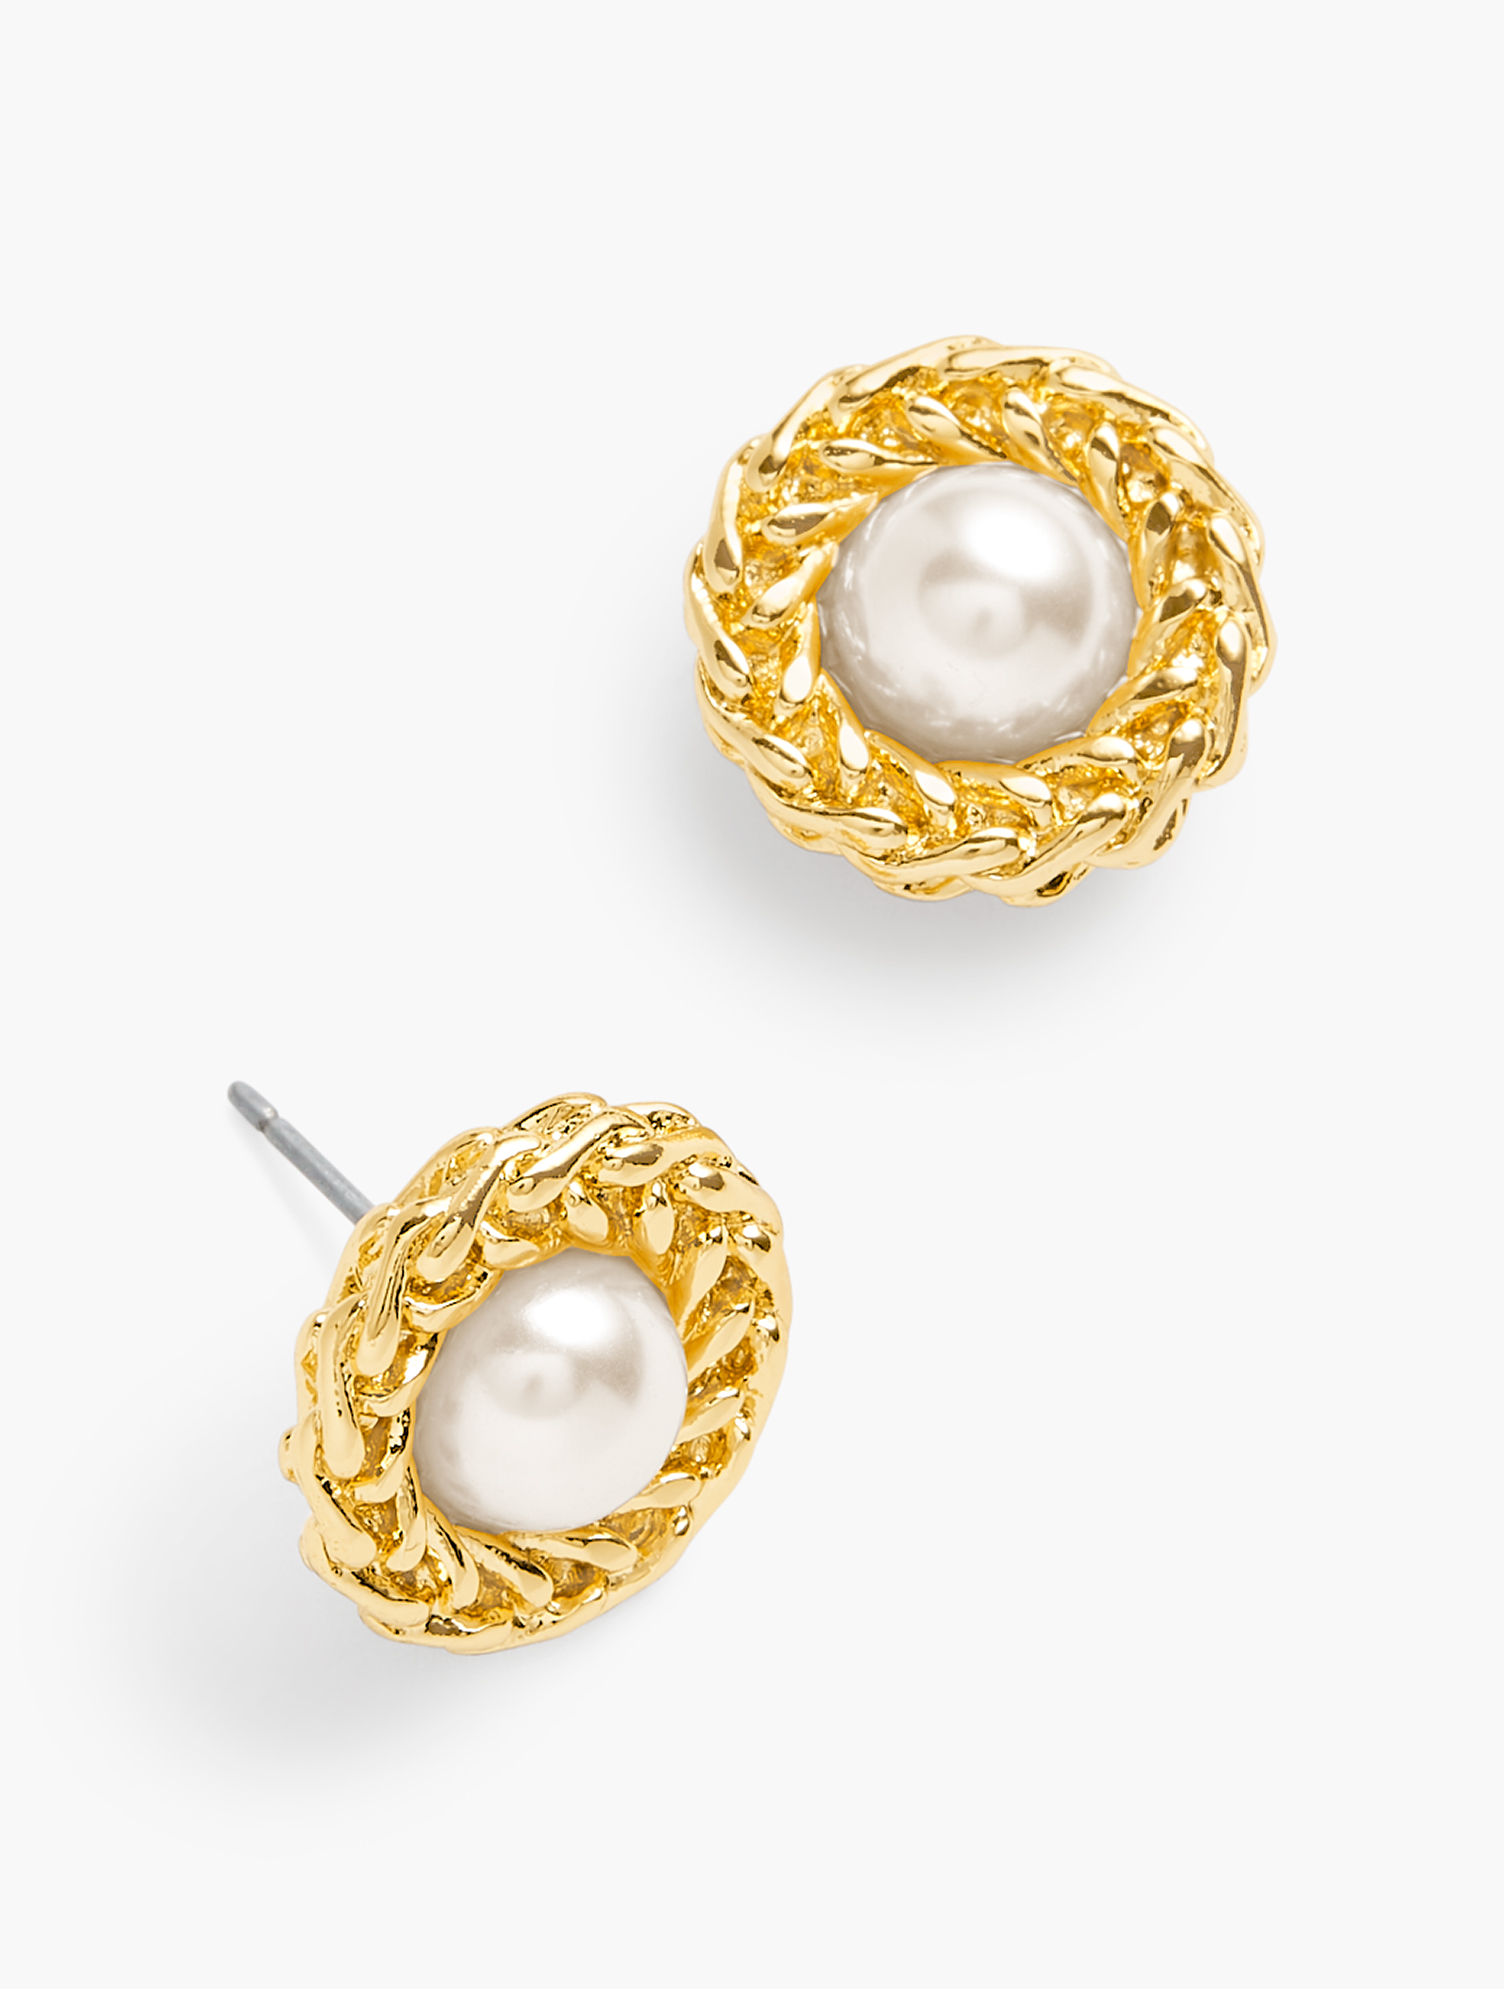 1960s Jewelry Styles and Trends to Wear Gold Nest Pearl Earrings - IVORY-PEARLGOLD - OS - Talbots $24.99 AT vintagedancer.com